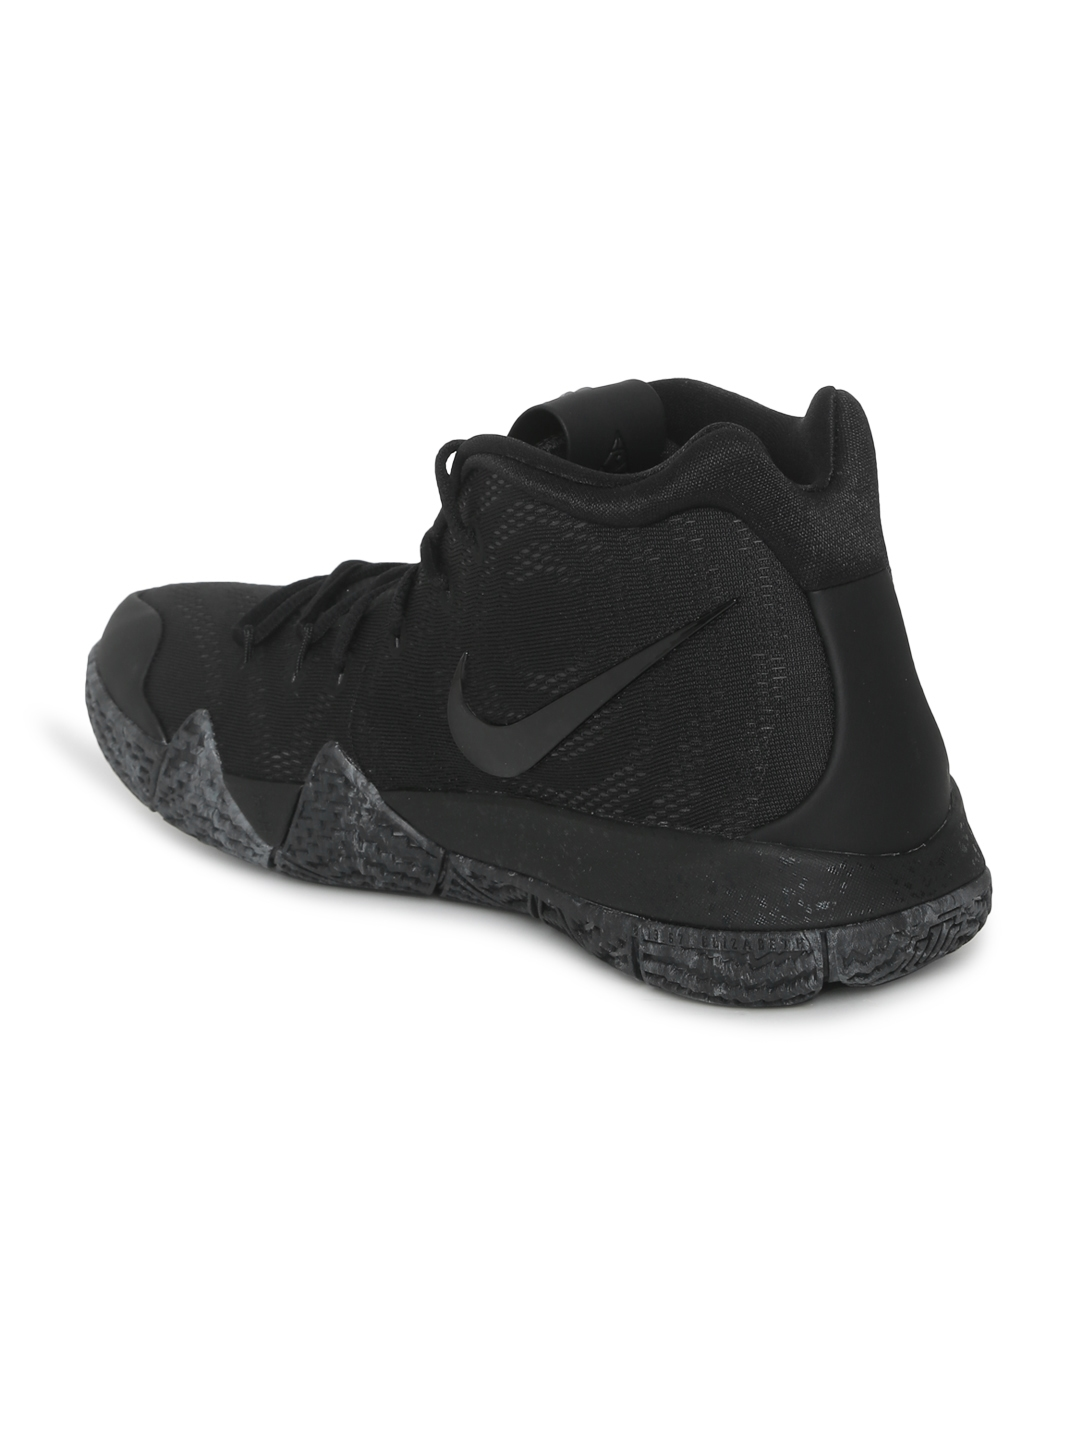 new style 53eb3 b30f6 Nike Men Black Kyrie 4 Basketball Shoe